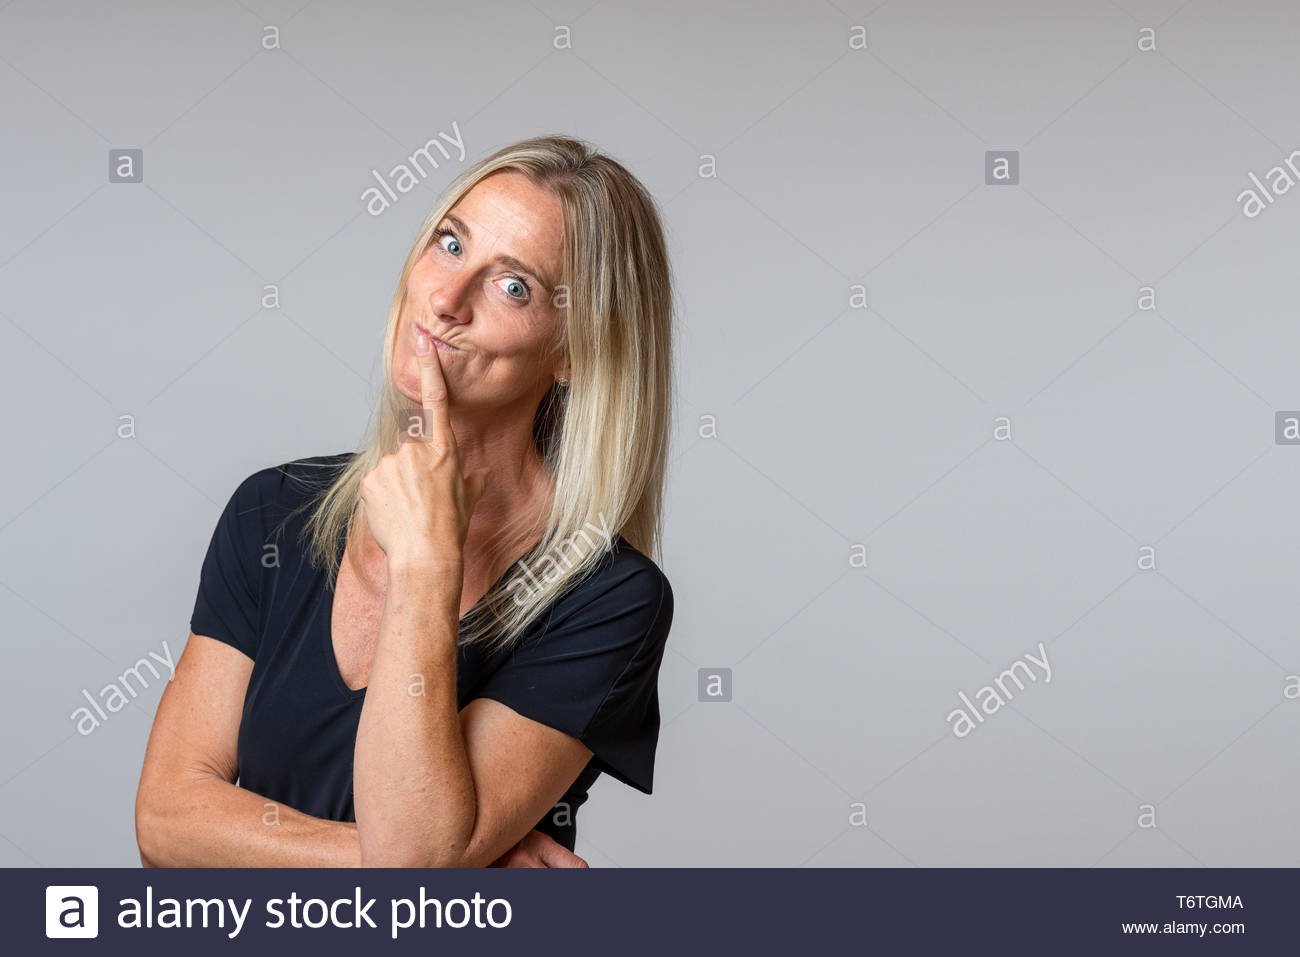 Speculative woman looking at the camera wide eyed - Stock Image